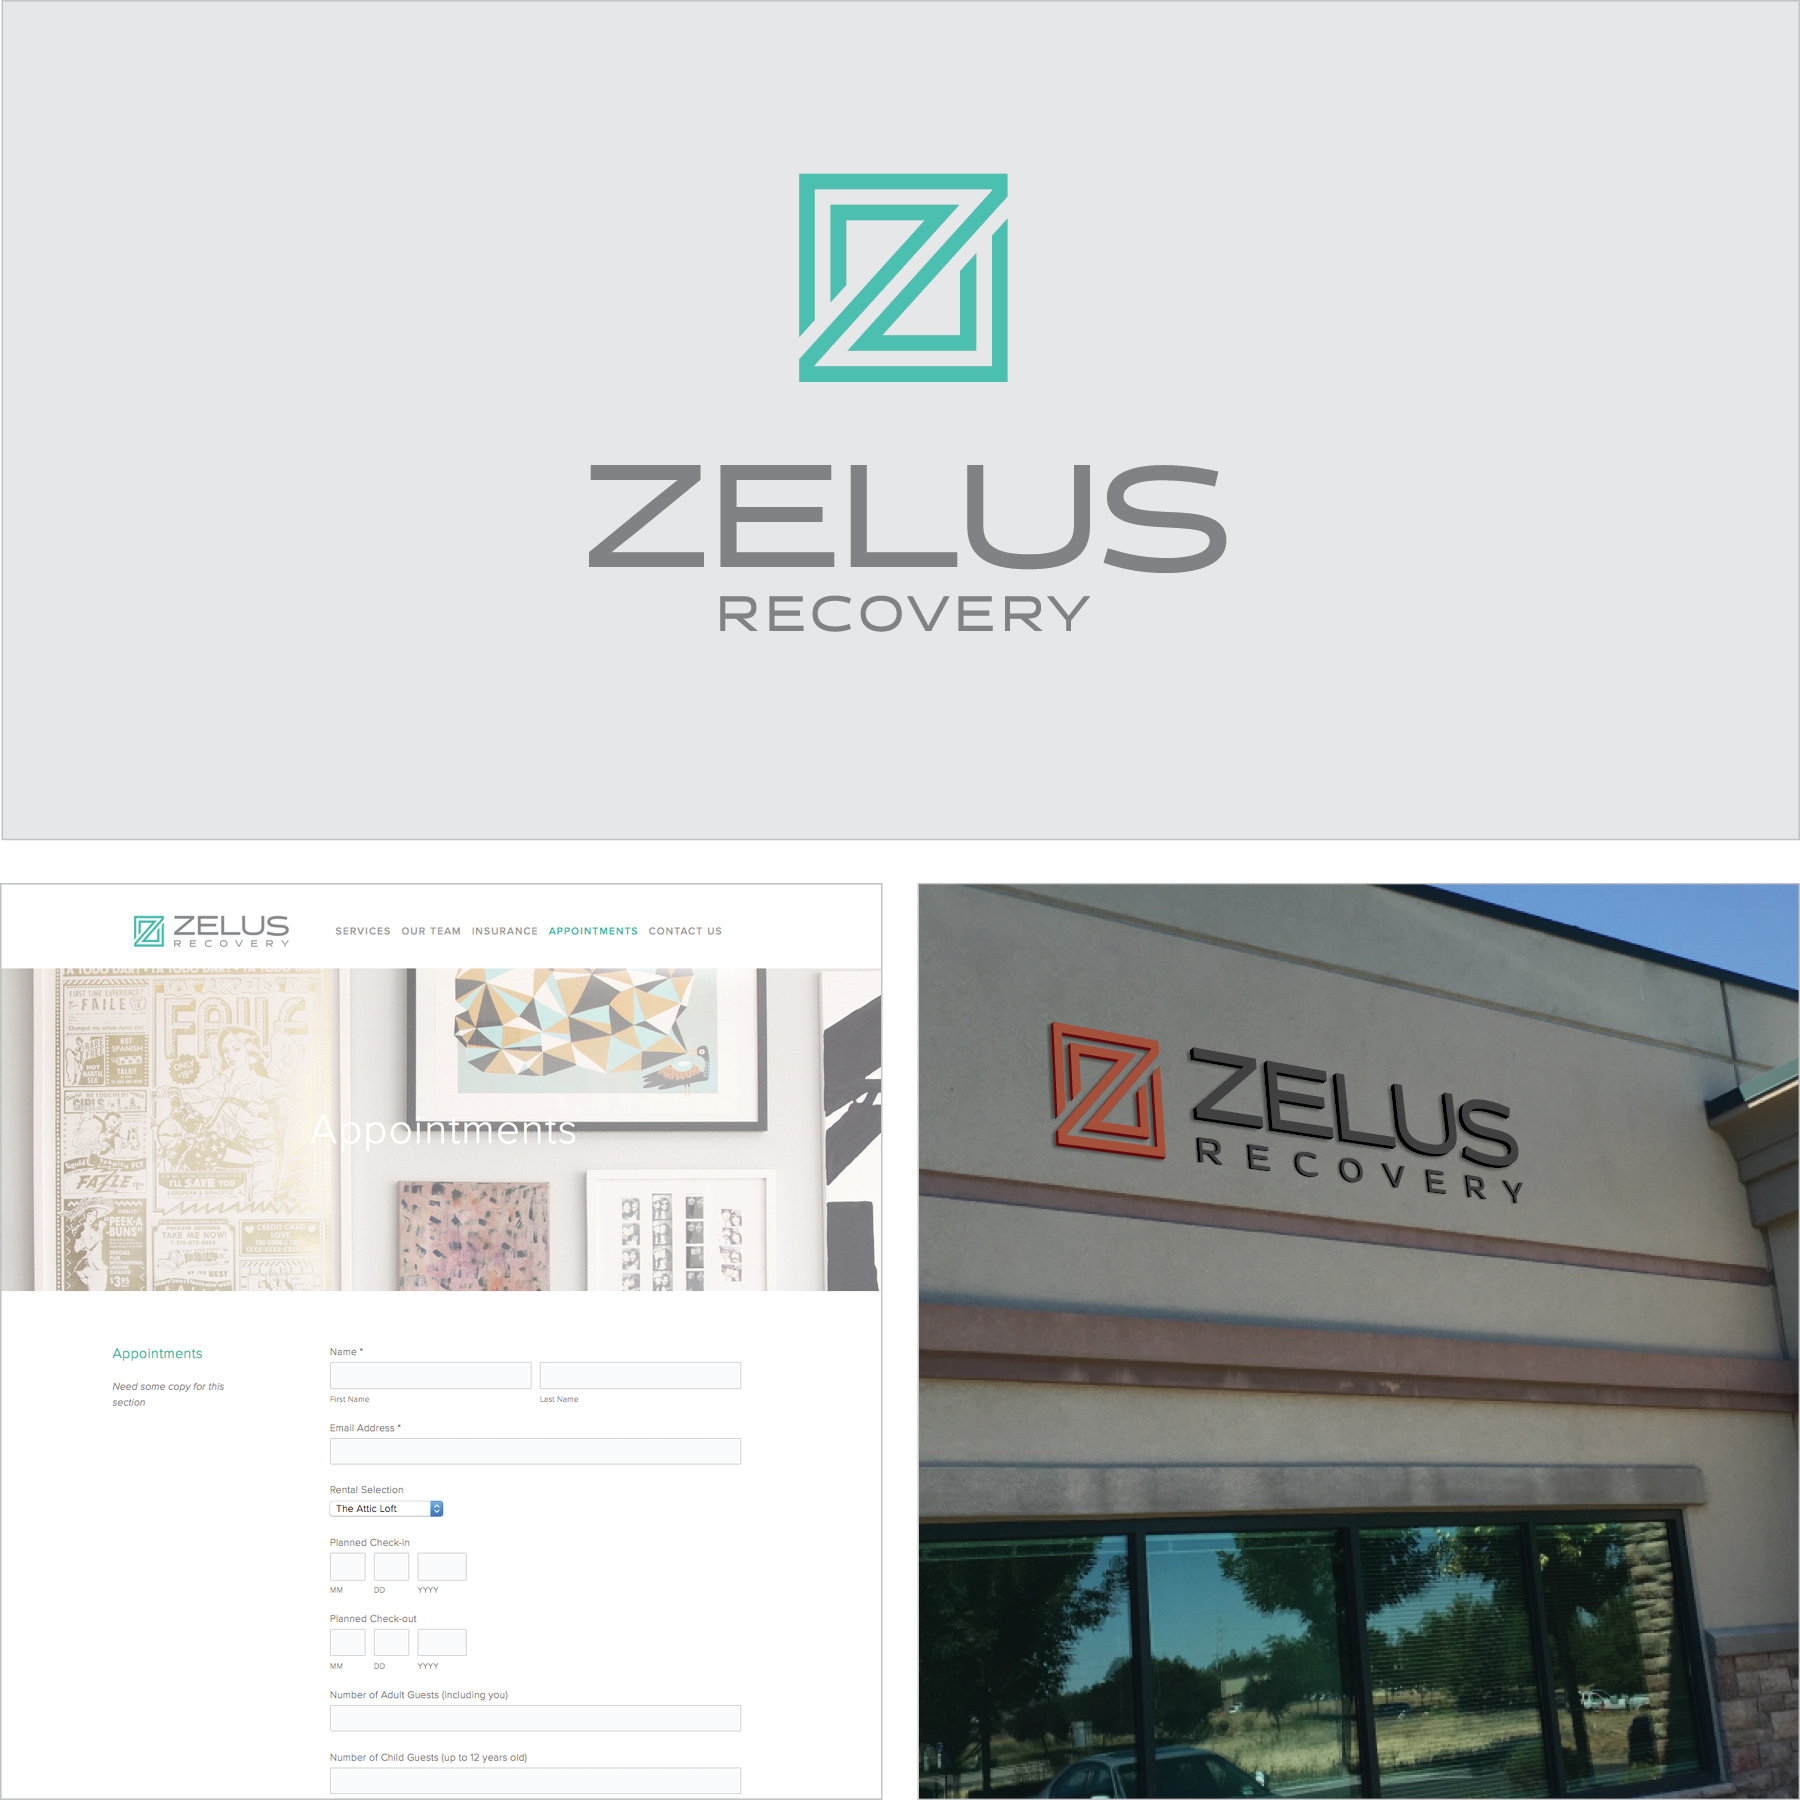 Zelus Recovery - Zelus Recovery, a new Boise-based treatment center, needed branding elements for their business launch: a logo, print materials, a website, outdoor signage, and a website. Kampfire Media worked with the founder to help define their unique story. We then created engaging, quality pieces that intertwined their custom messaging to create specialized, professional brand guidelines and all the pieces needed to successfully launch the business.